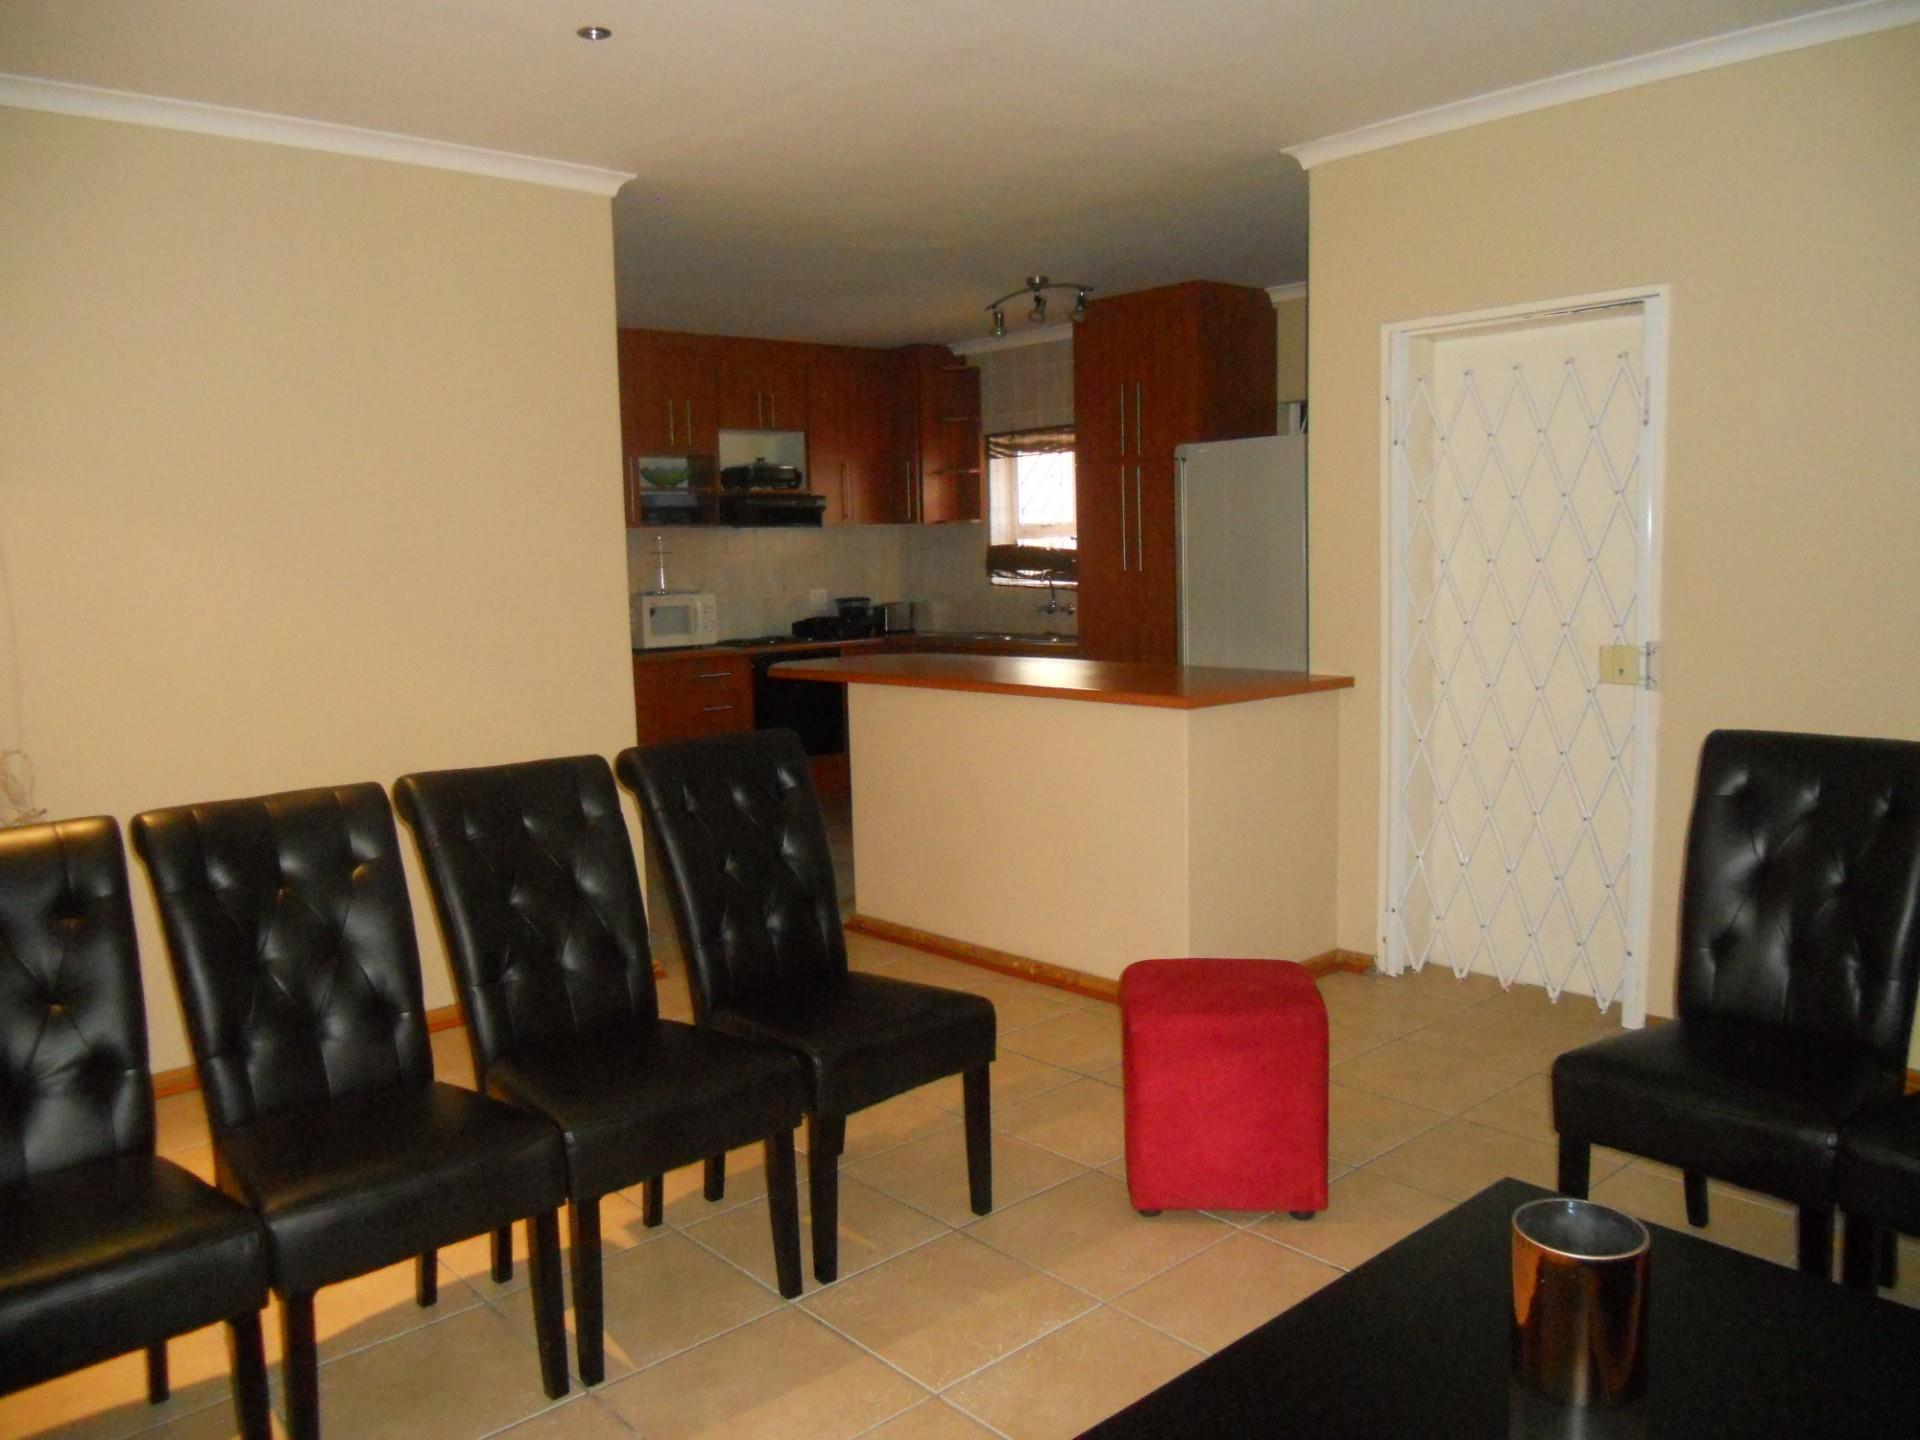 2 Bedroom House To Rent in Jagtershof